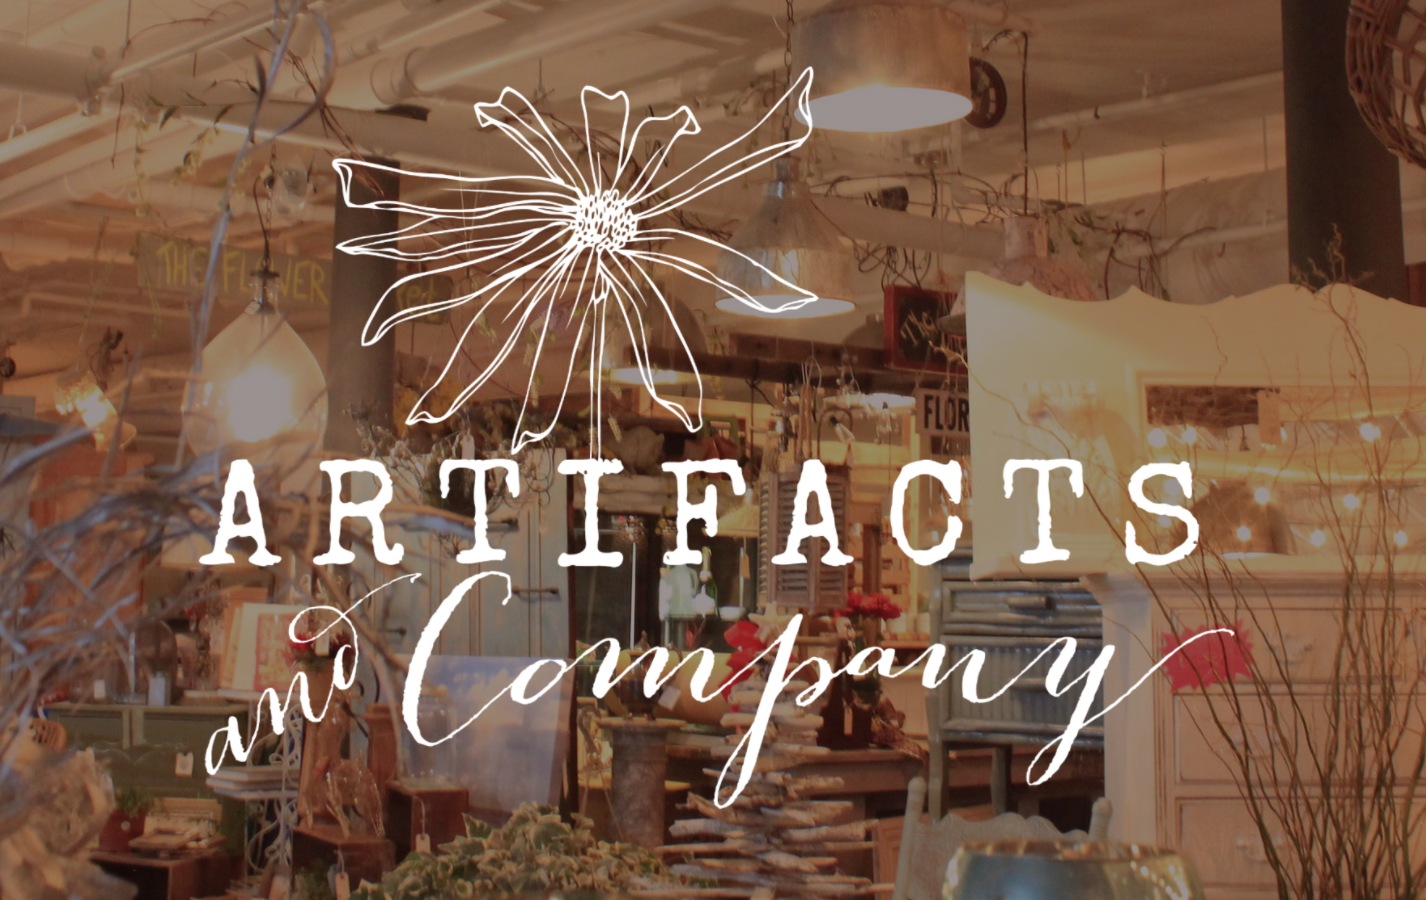 Artifacts and Company - 100 North Bay Avenue, Beach Haven NJ 08008Open Daily 10-5